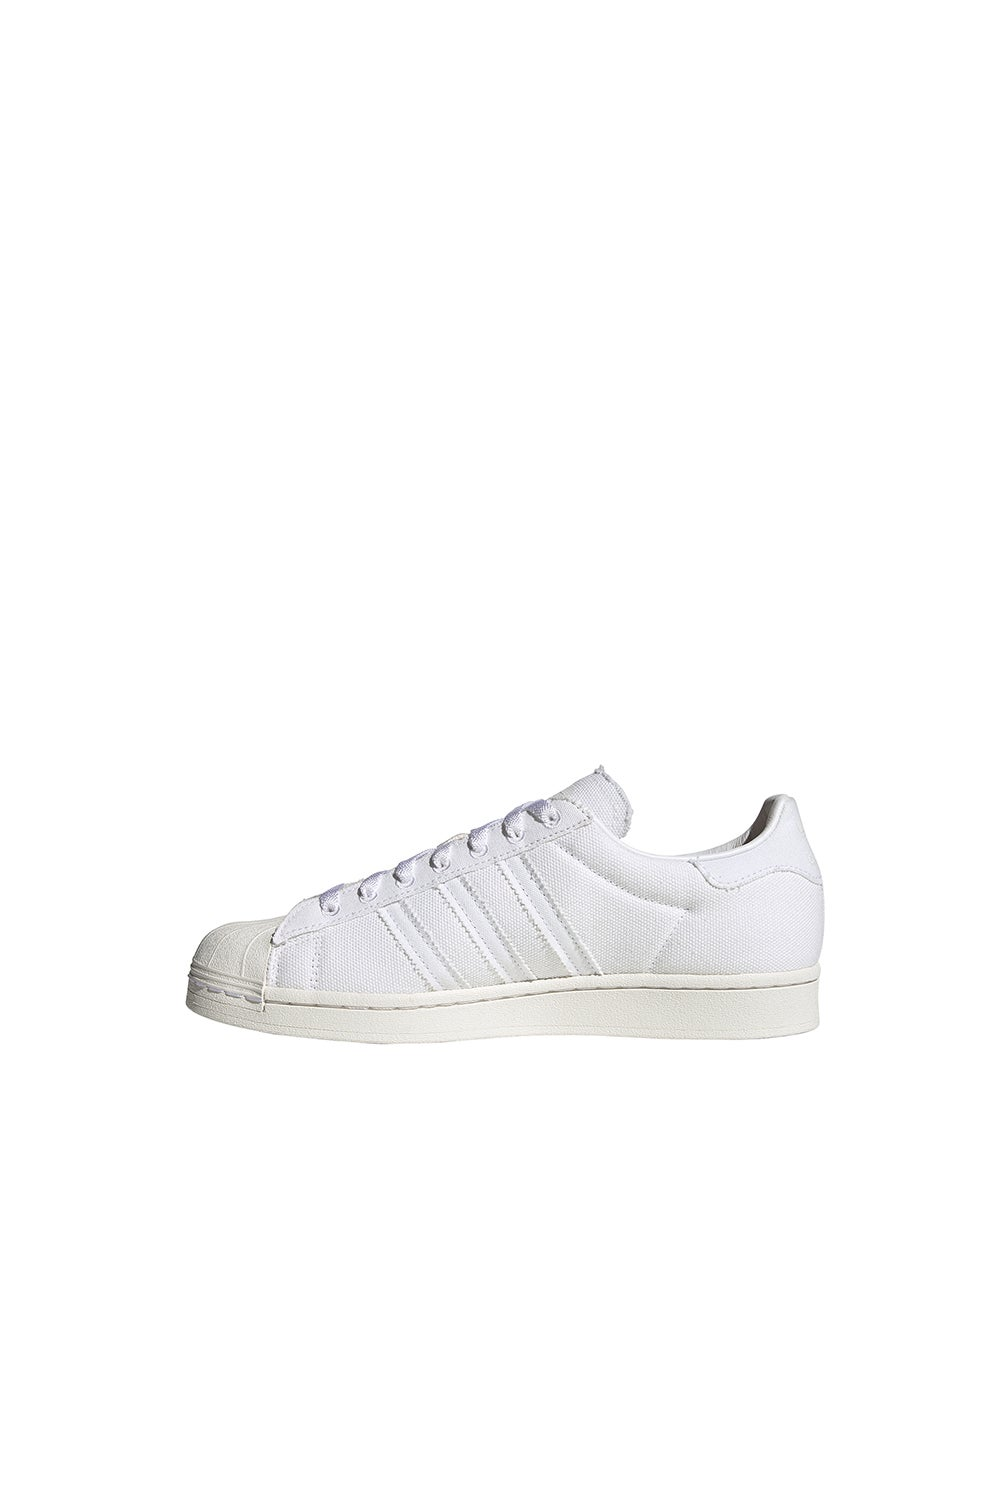 adidas Superstar FTWR White/Off White